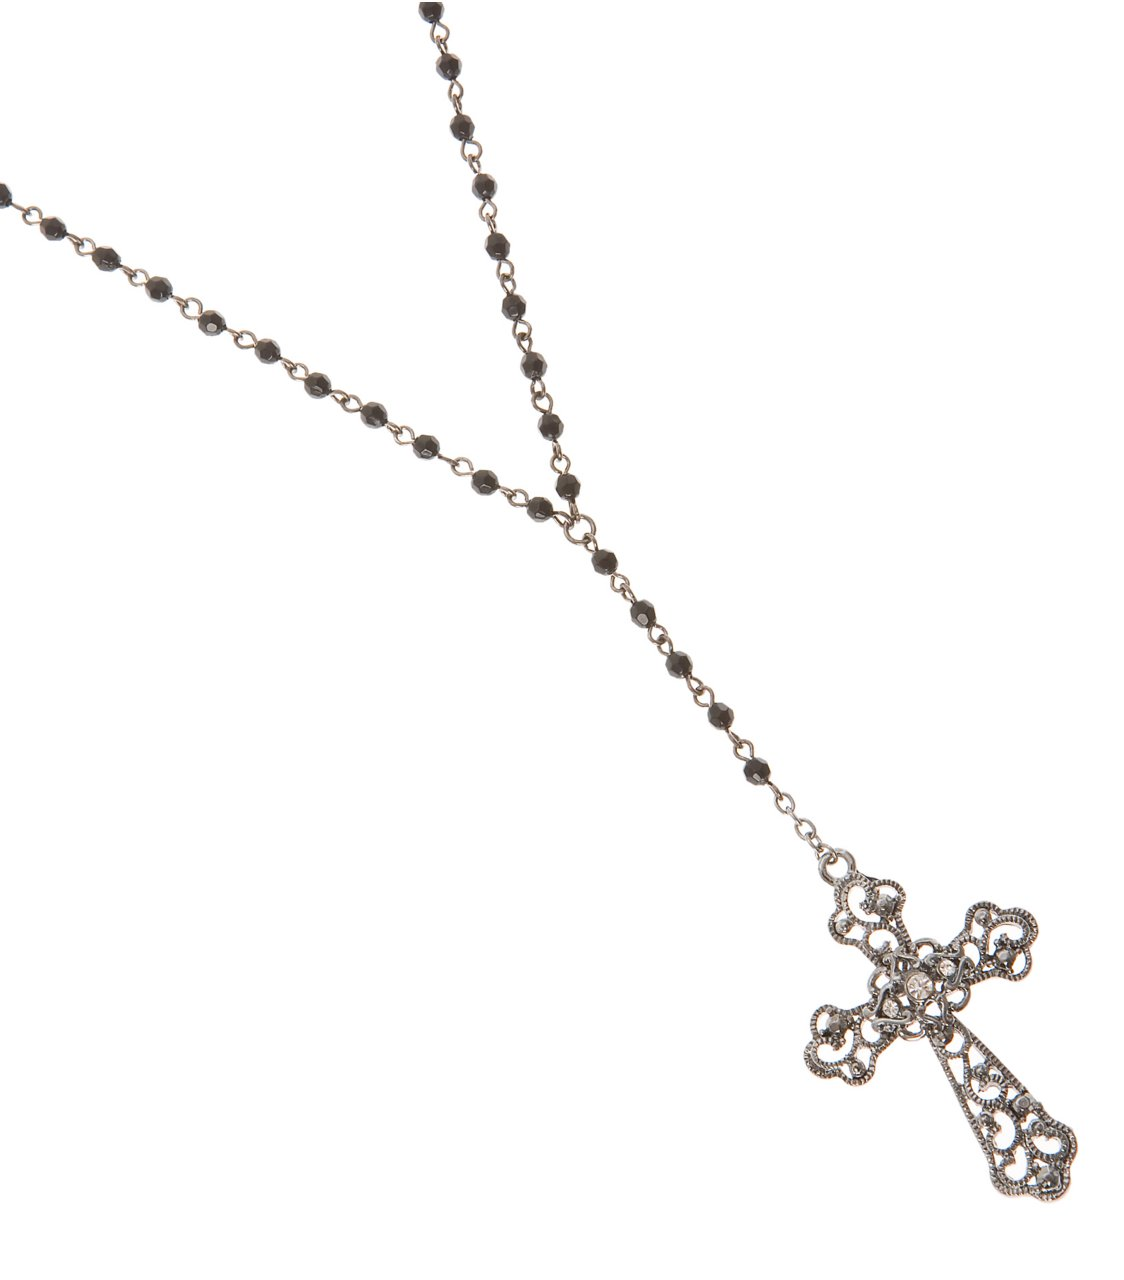 G by GUESS Hematite Rosary Necklace, HEMATITE